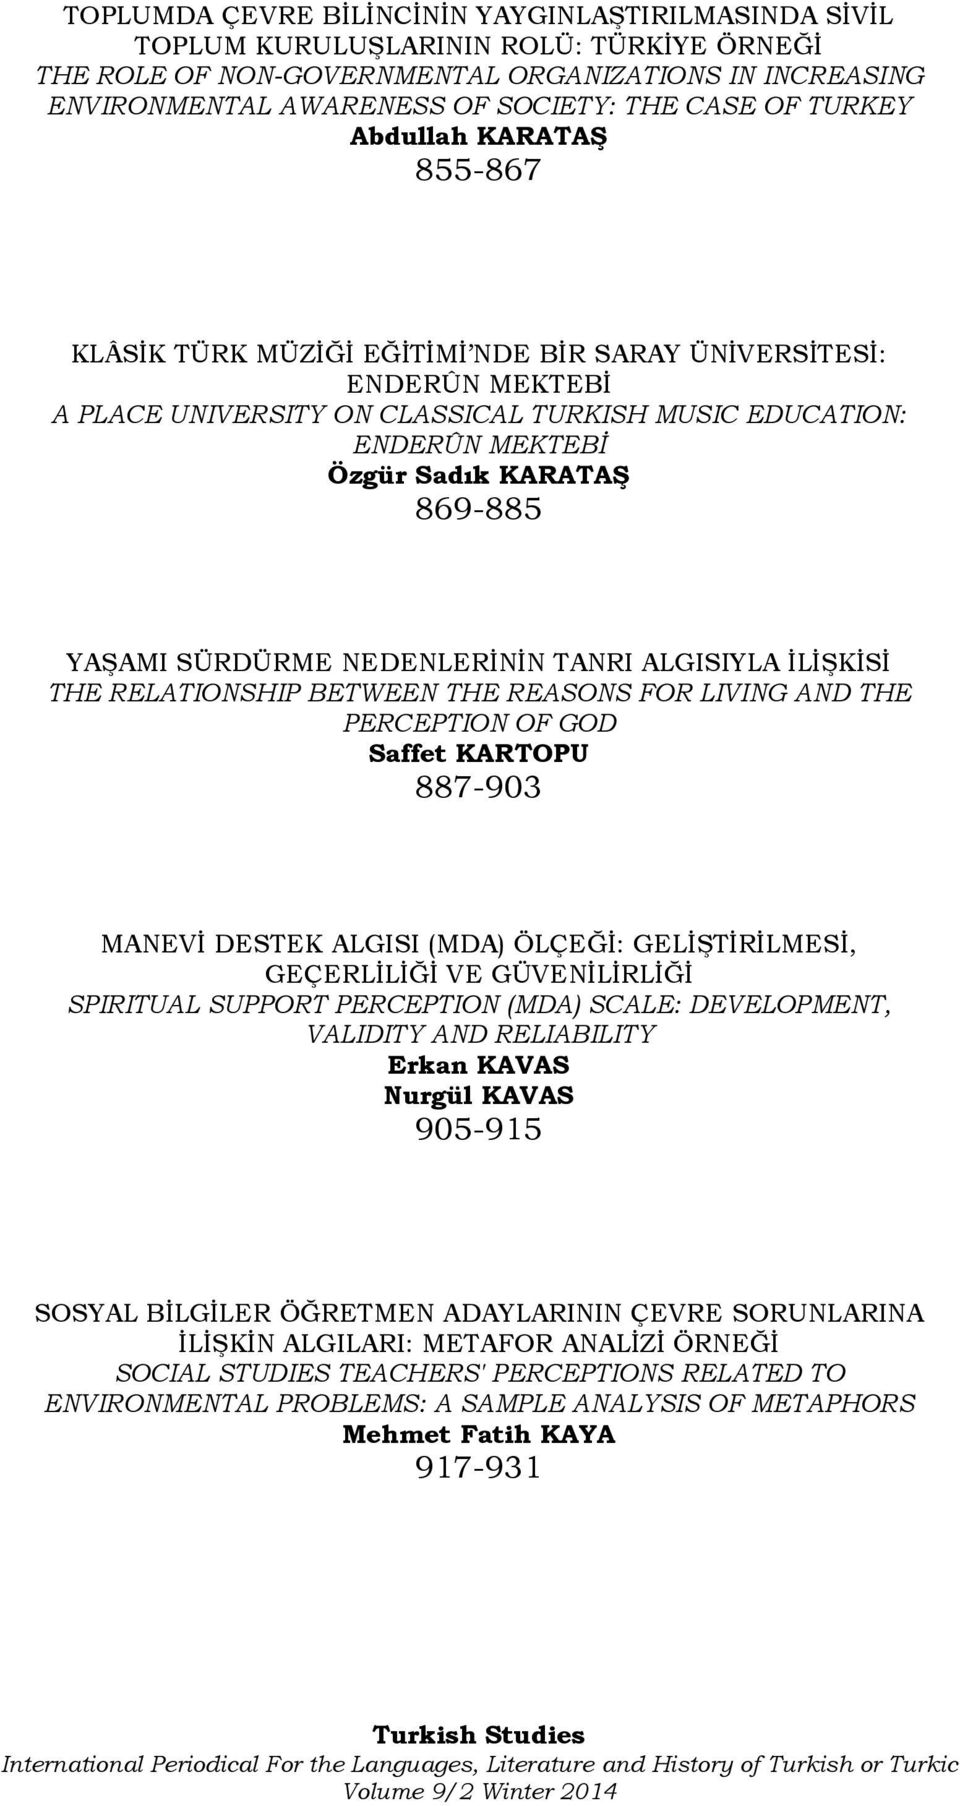 869-885 YAŞAMI SÜRDÜRME NEDENLERİNİN TANRI ALGISIYLA İLİŞKİSİ THE RELATIONSHIP BETWEEN THE REASONS FOR LIVING AND THE PERCEPTION OF GOD Saffet KARTOPU 887-903 MANEVİ DESTEK ALGISI (MDA) ÖLÇEĞİ: